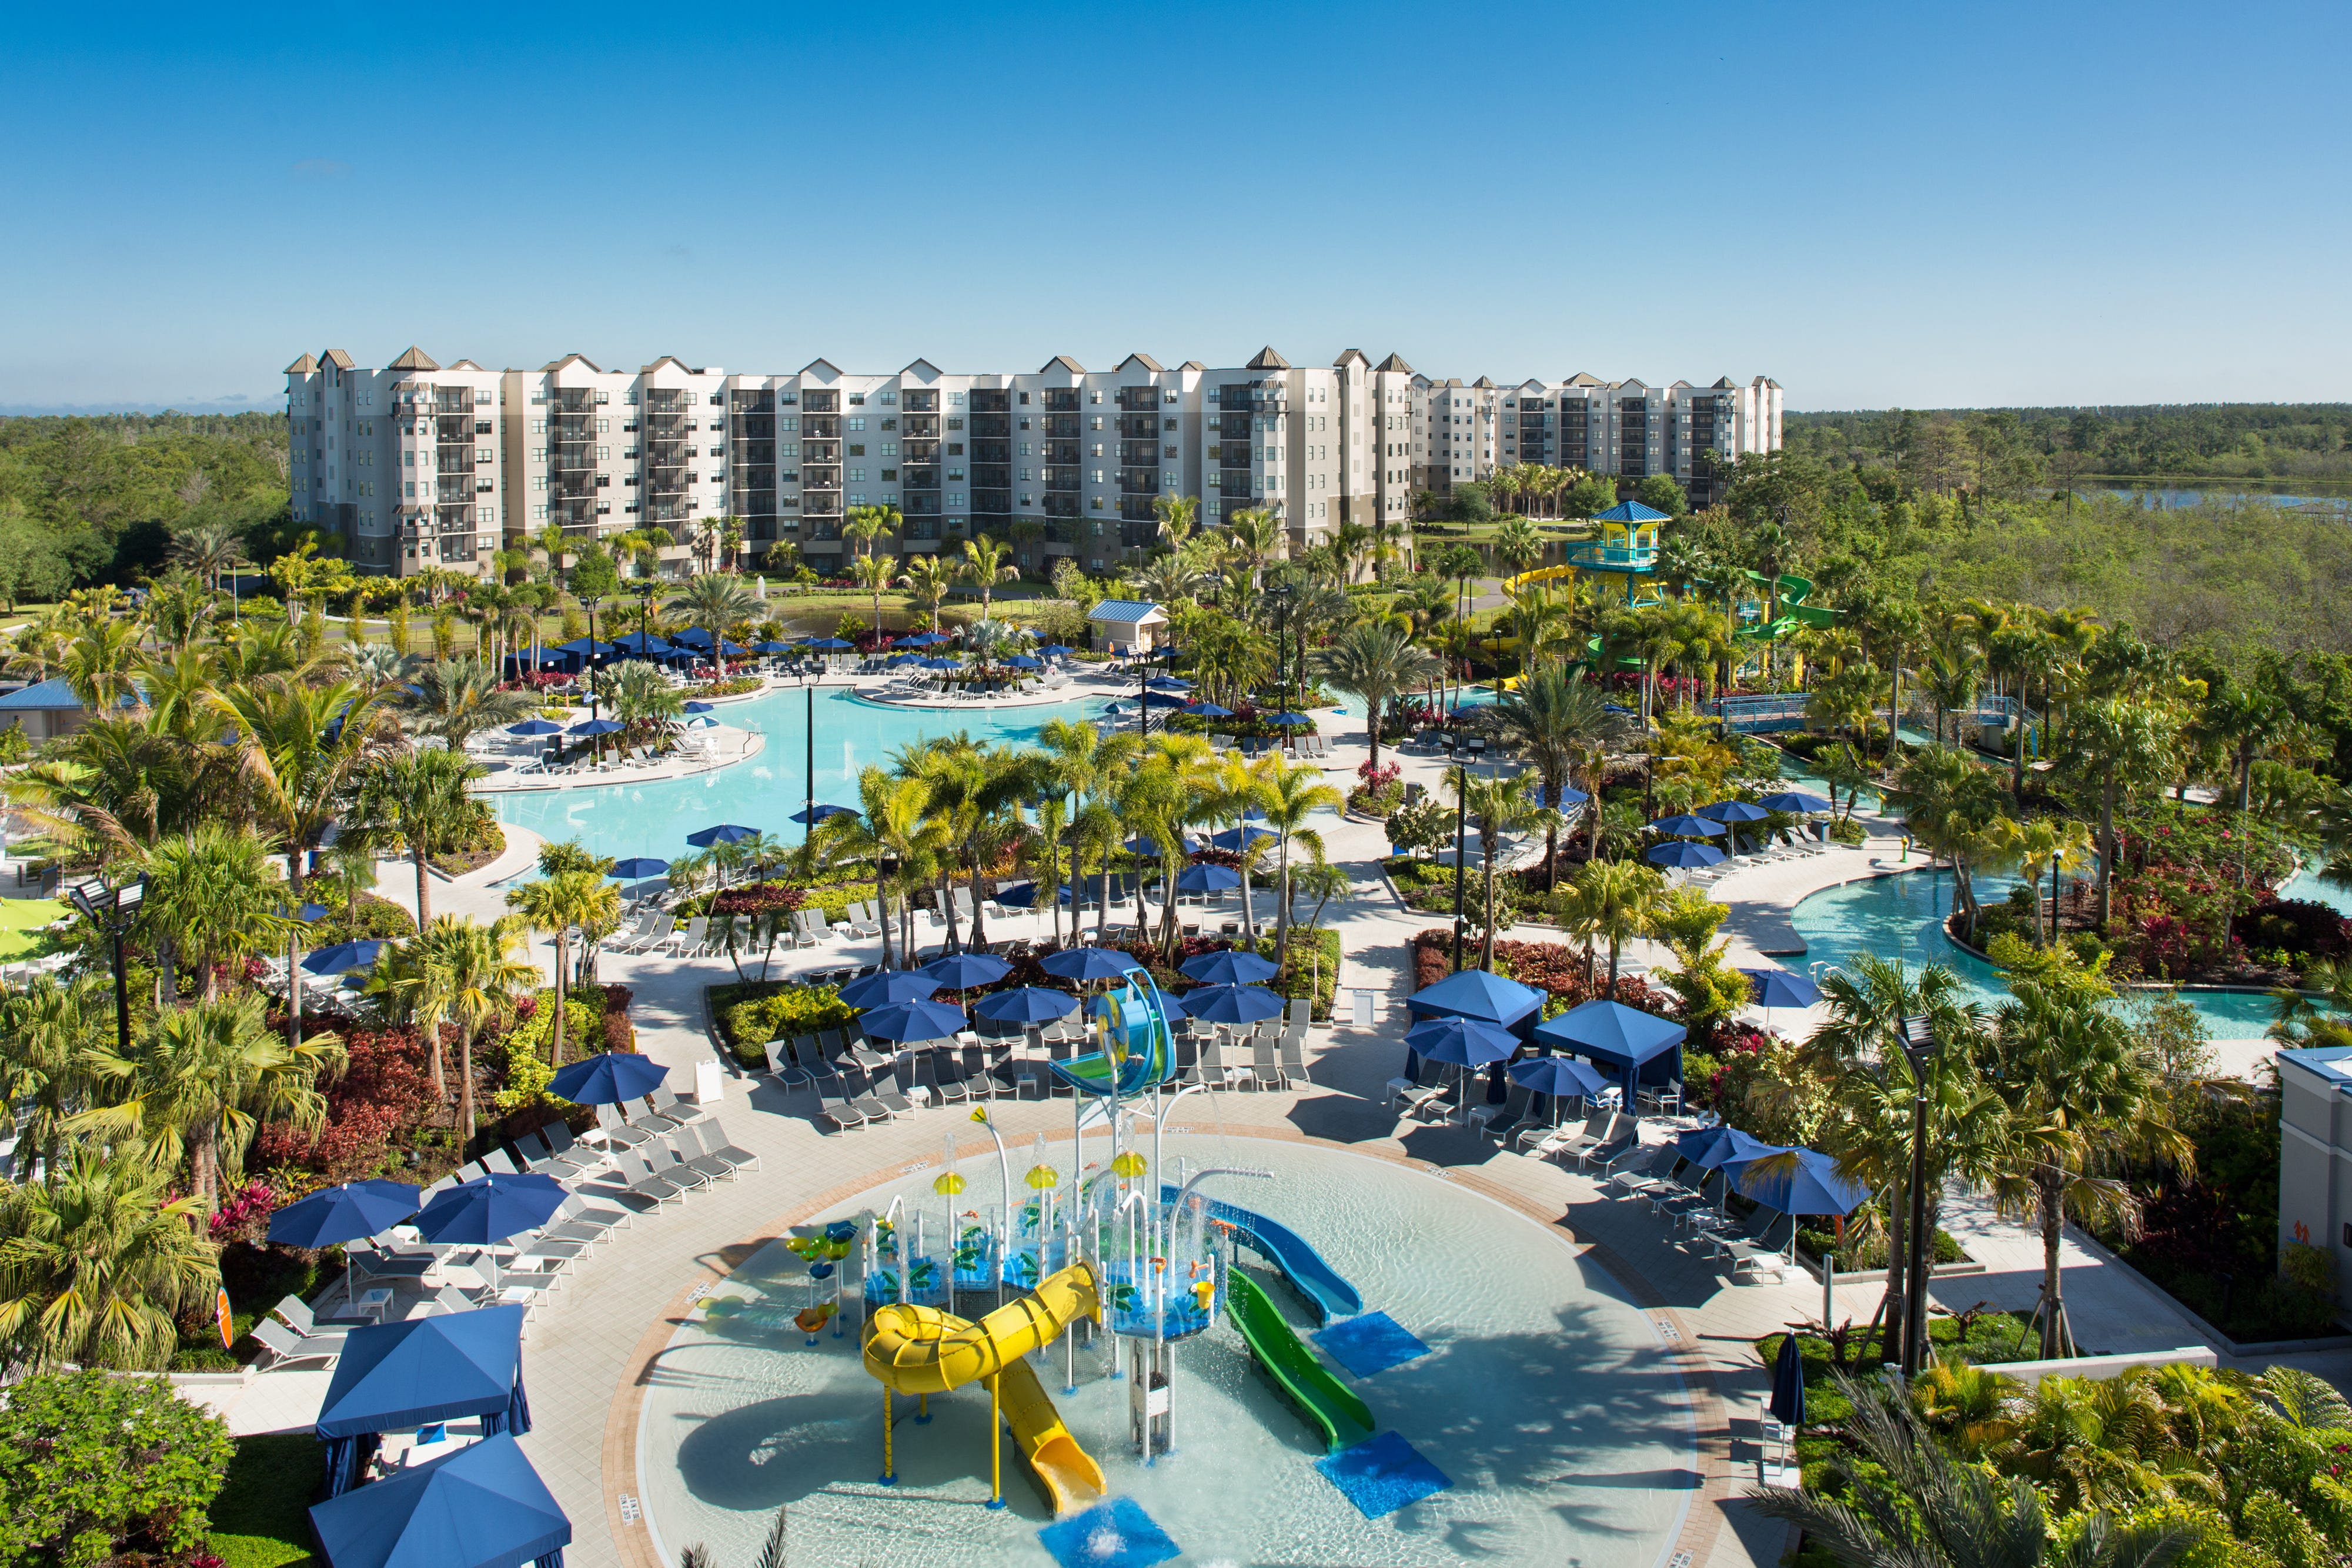 These 10 Florida water park resorts that offer fun, sun, rides and slides